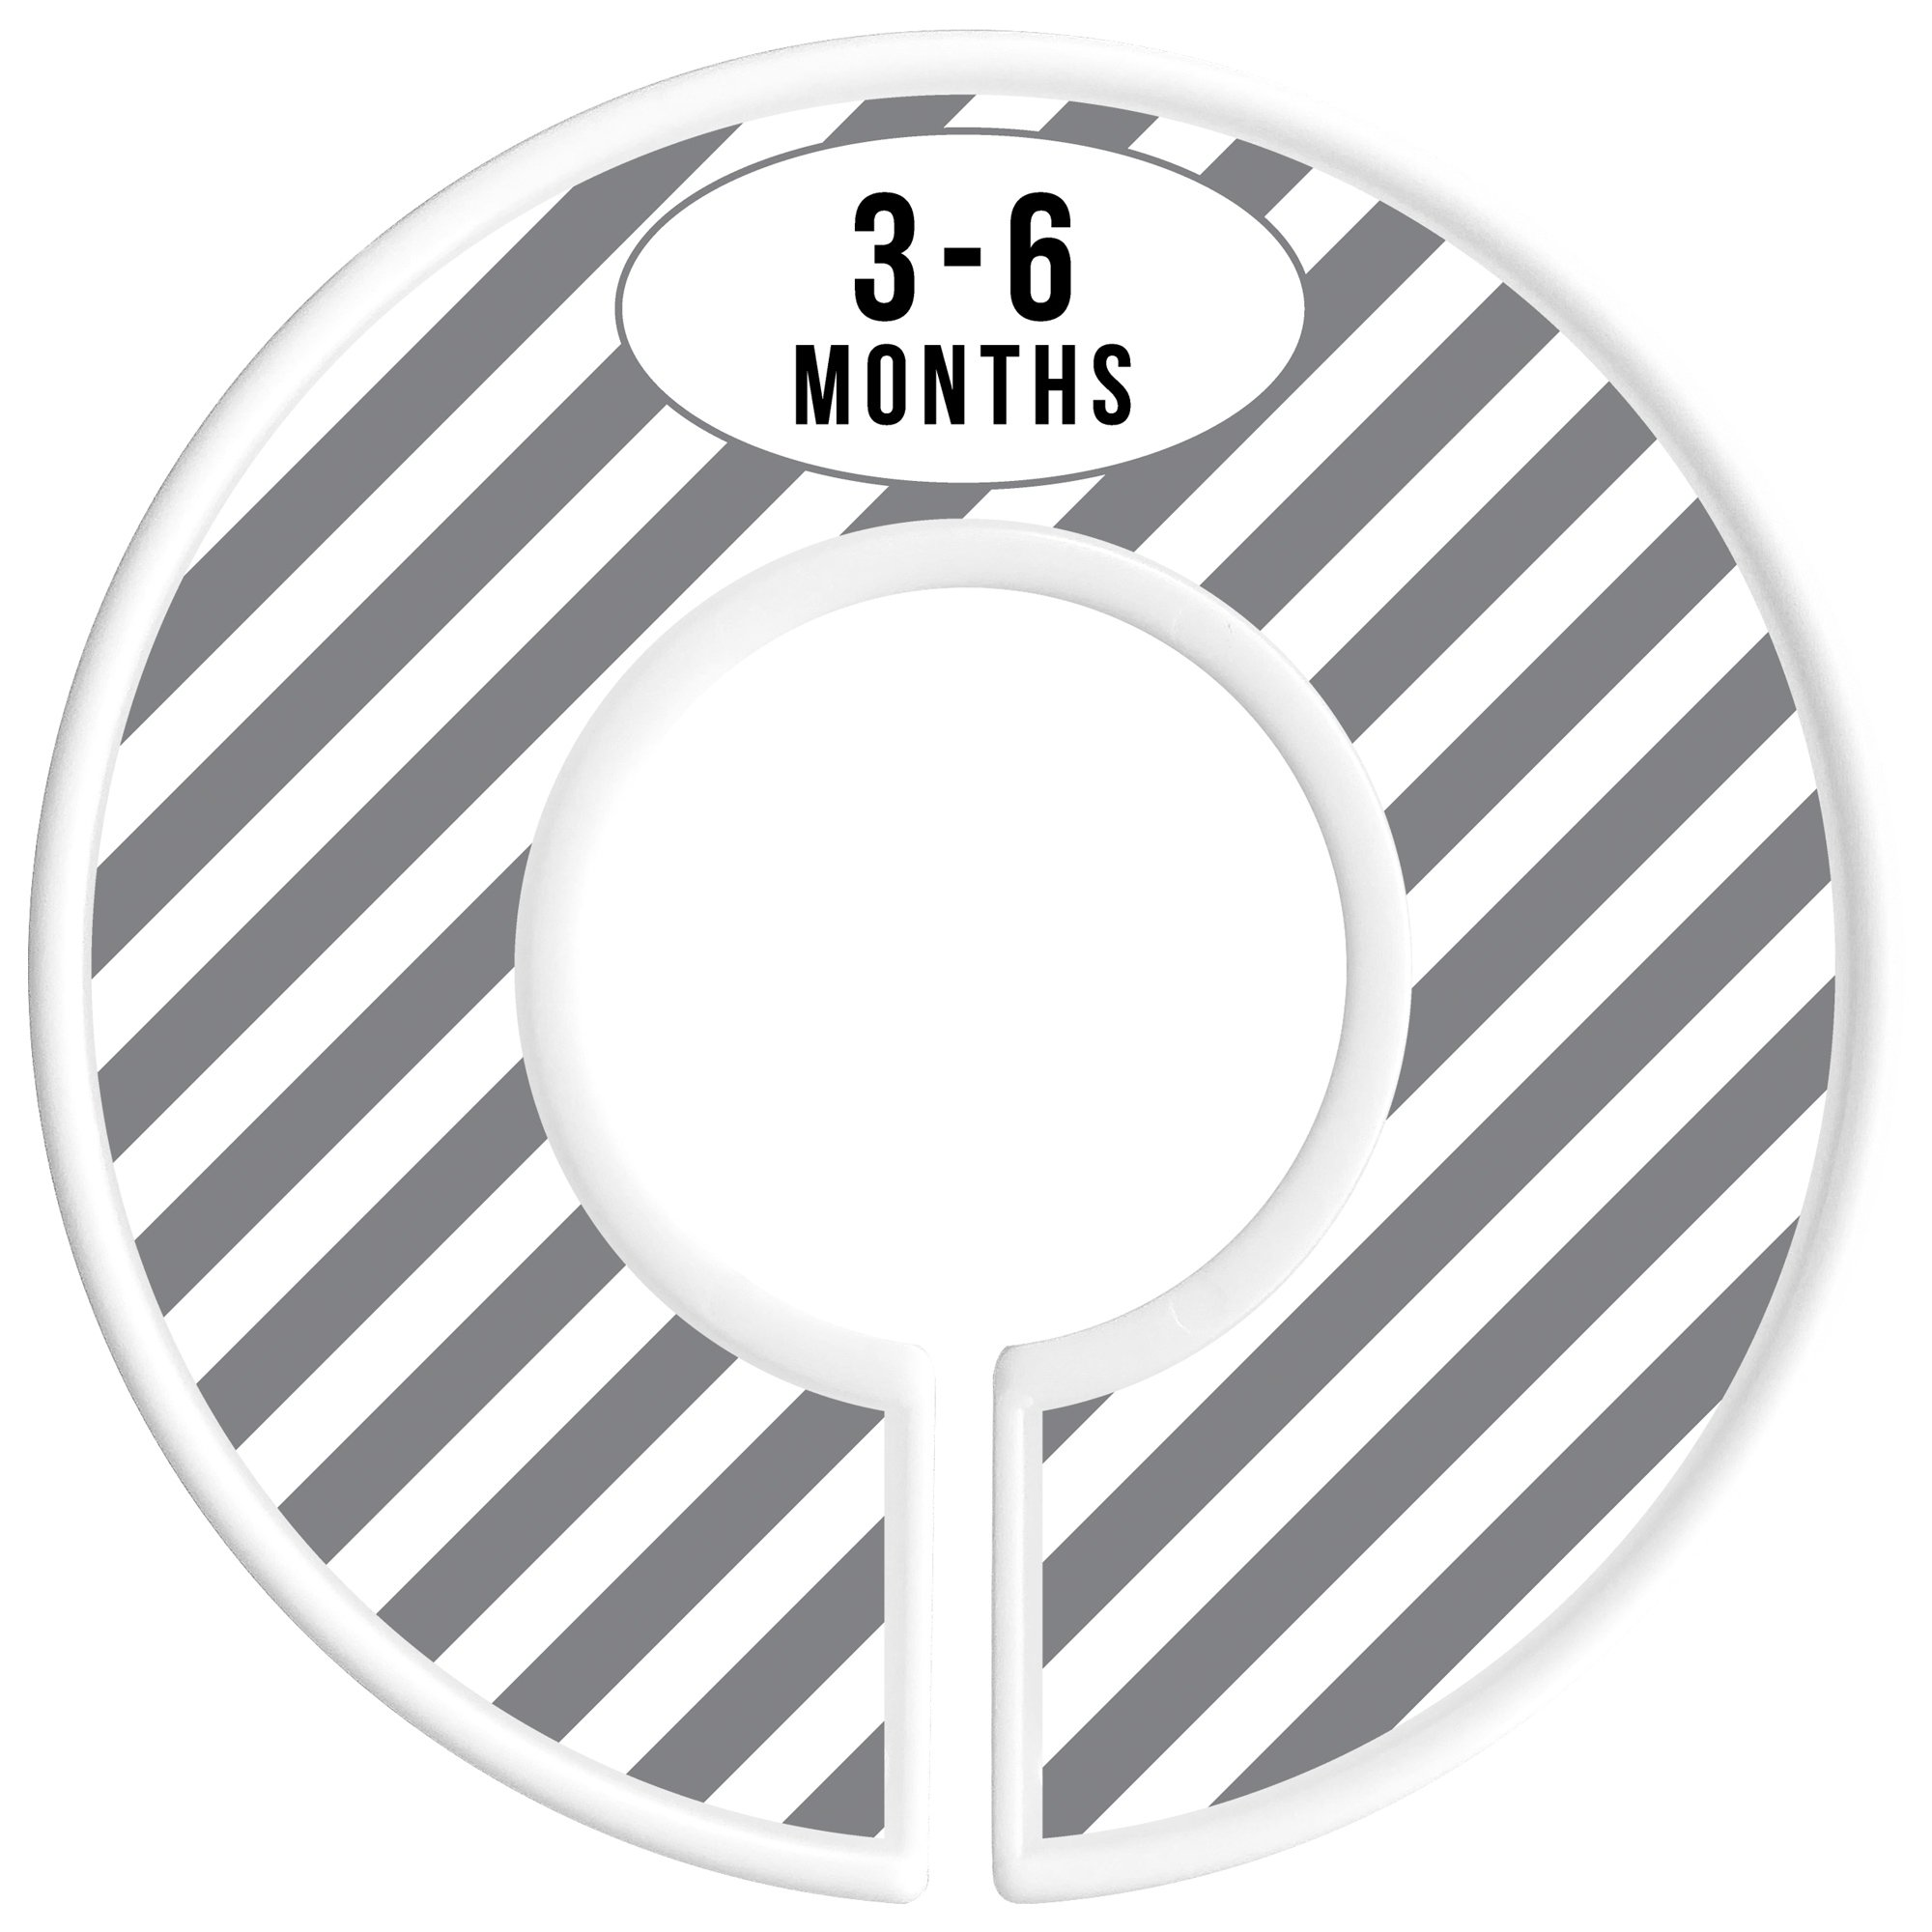 Delicush Baby Closet Dividers, Stripe, Chevron, Set of 6 Size Organizers, Nursery Closet Organizers, Baby Size Dividers, Glossy Finish, Boy, Girl (Grey) by DELICUSH (Image #4)